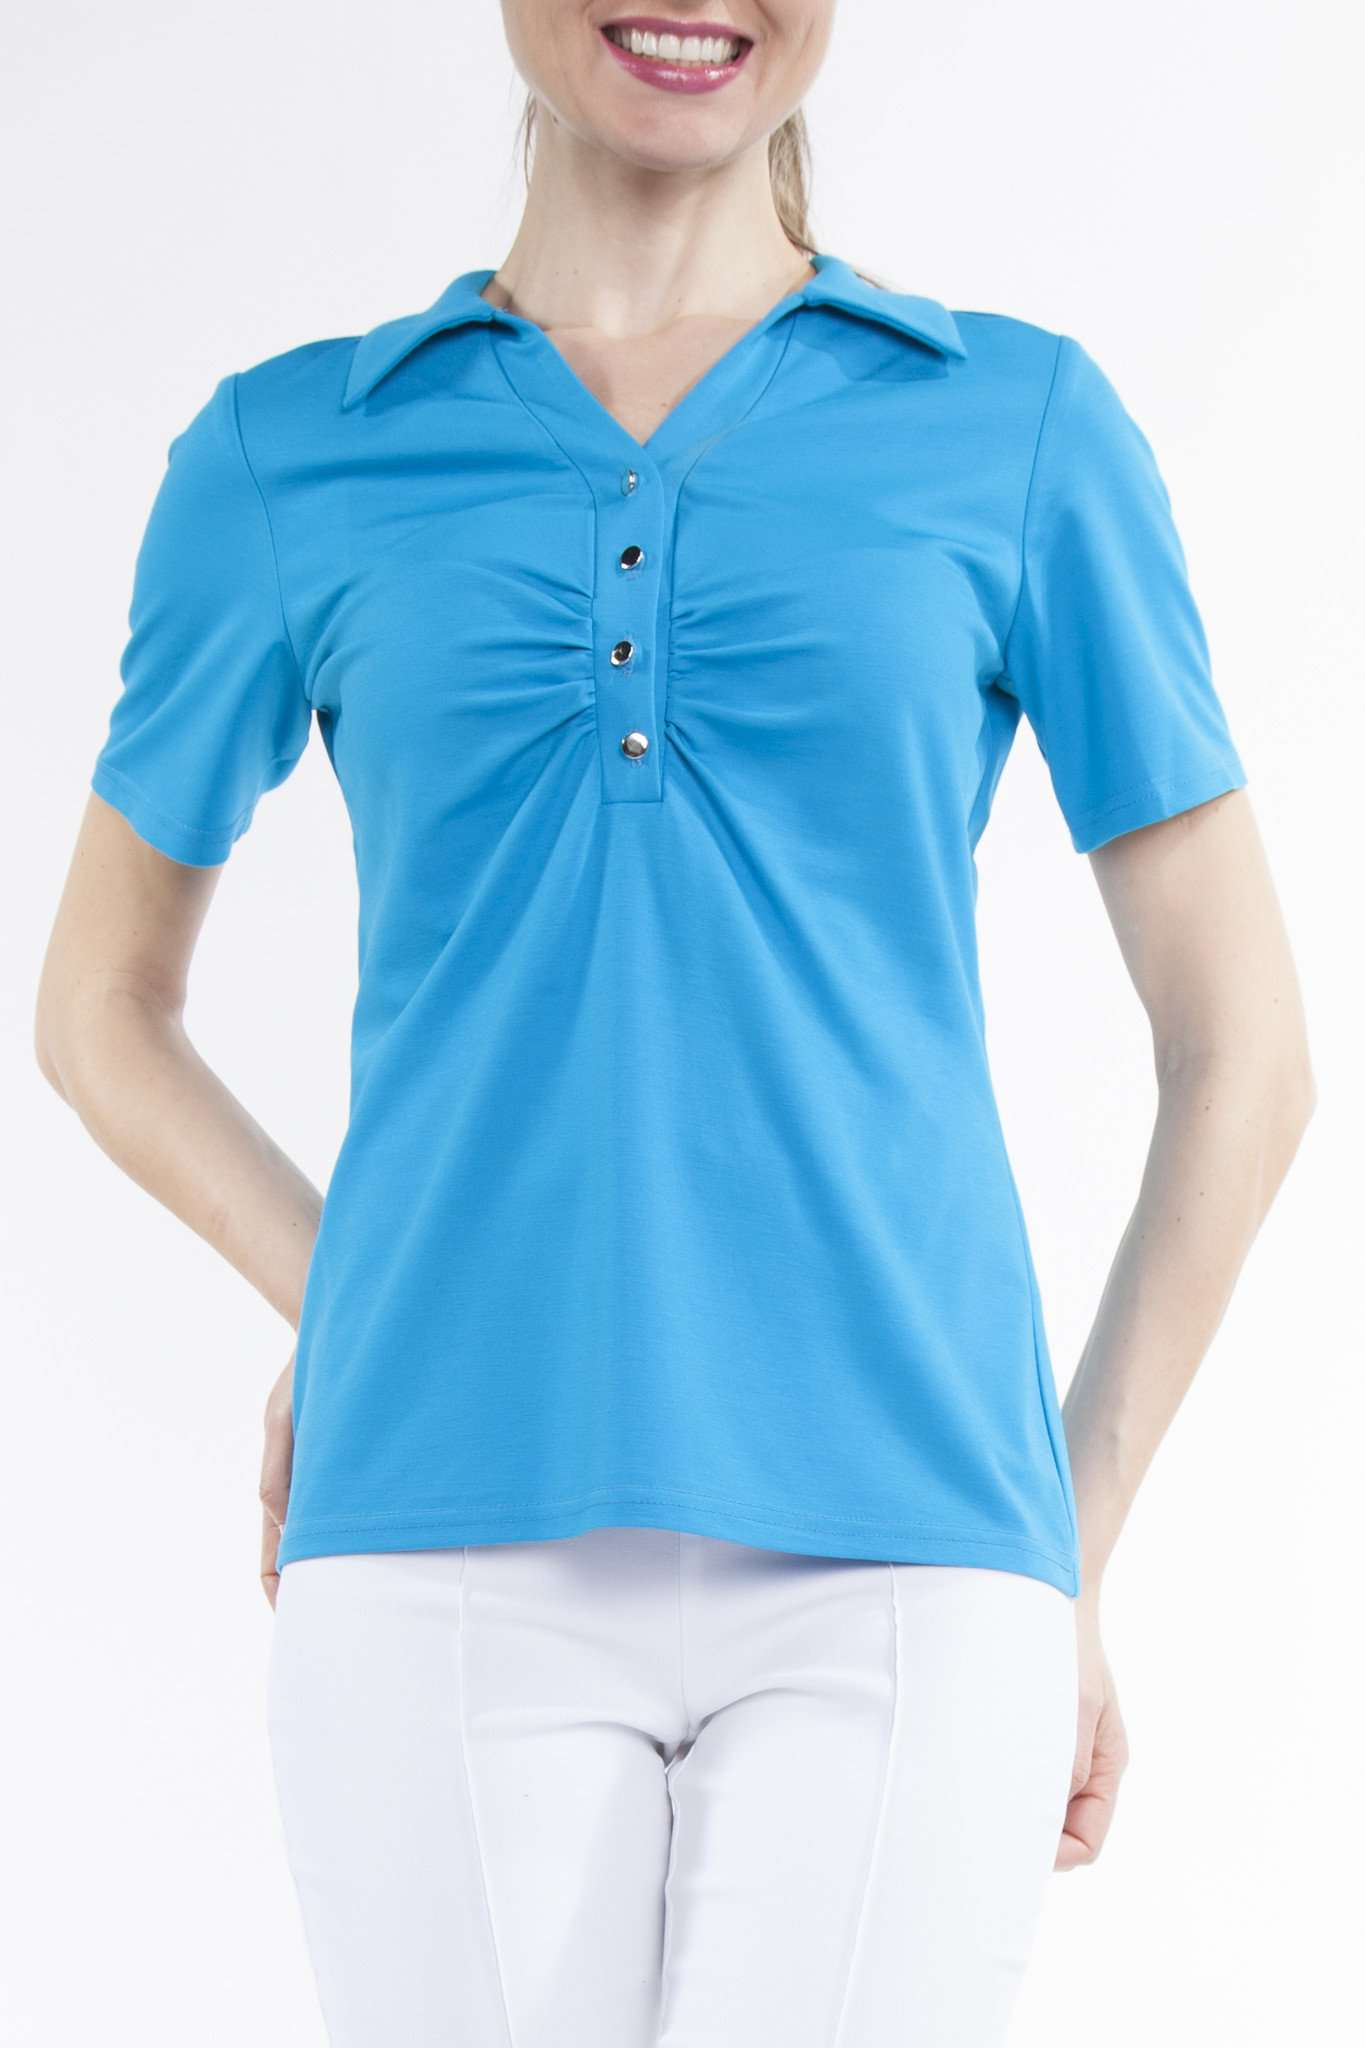 Turquoise Polo Top-Perfect Comfort For Golf and Leisure - Yvonne Marie